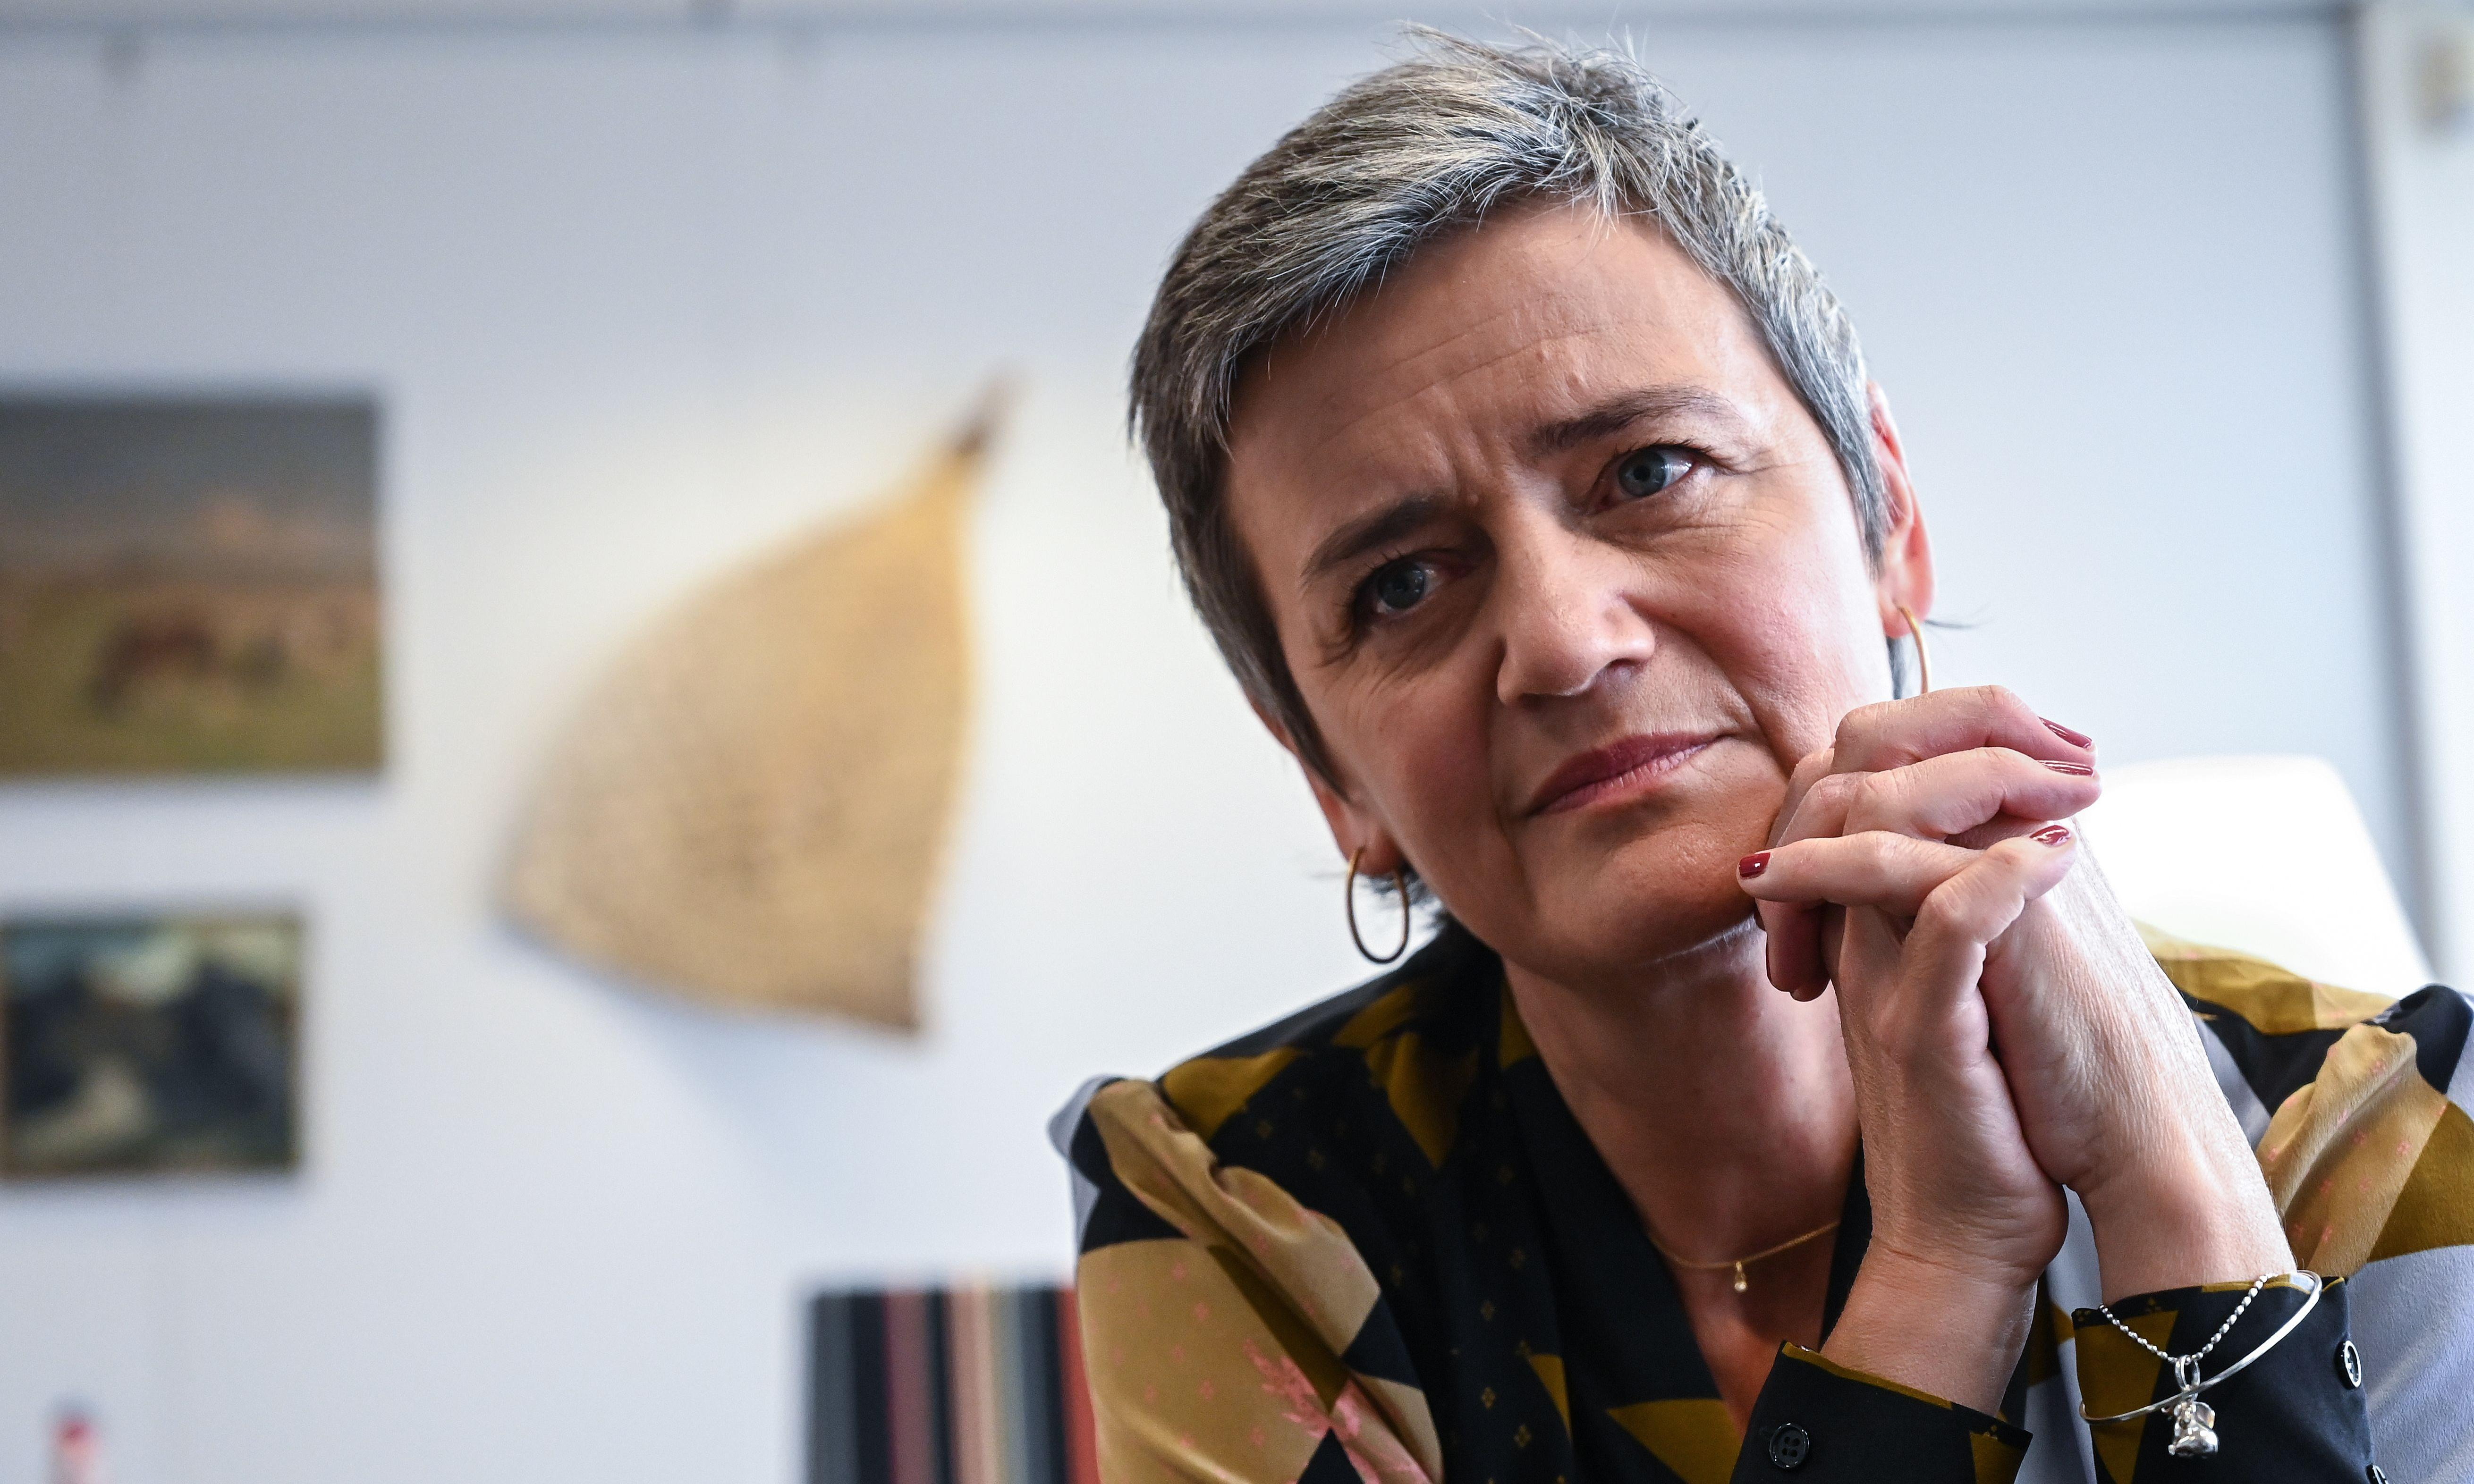 Margrethe Vestager scares the tech giants. If we leave the EU, we'll miss her